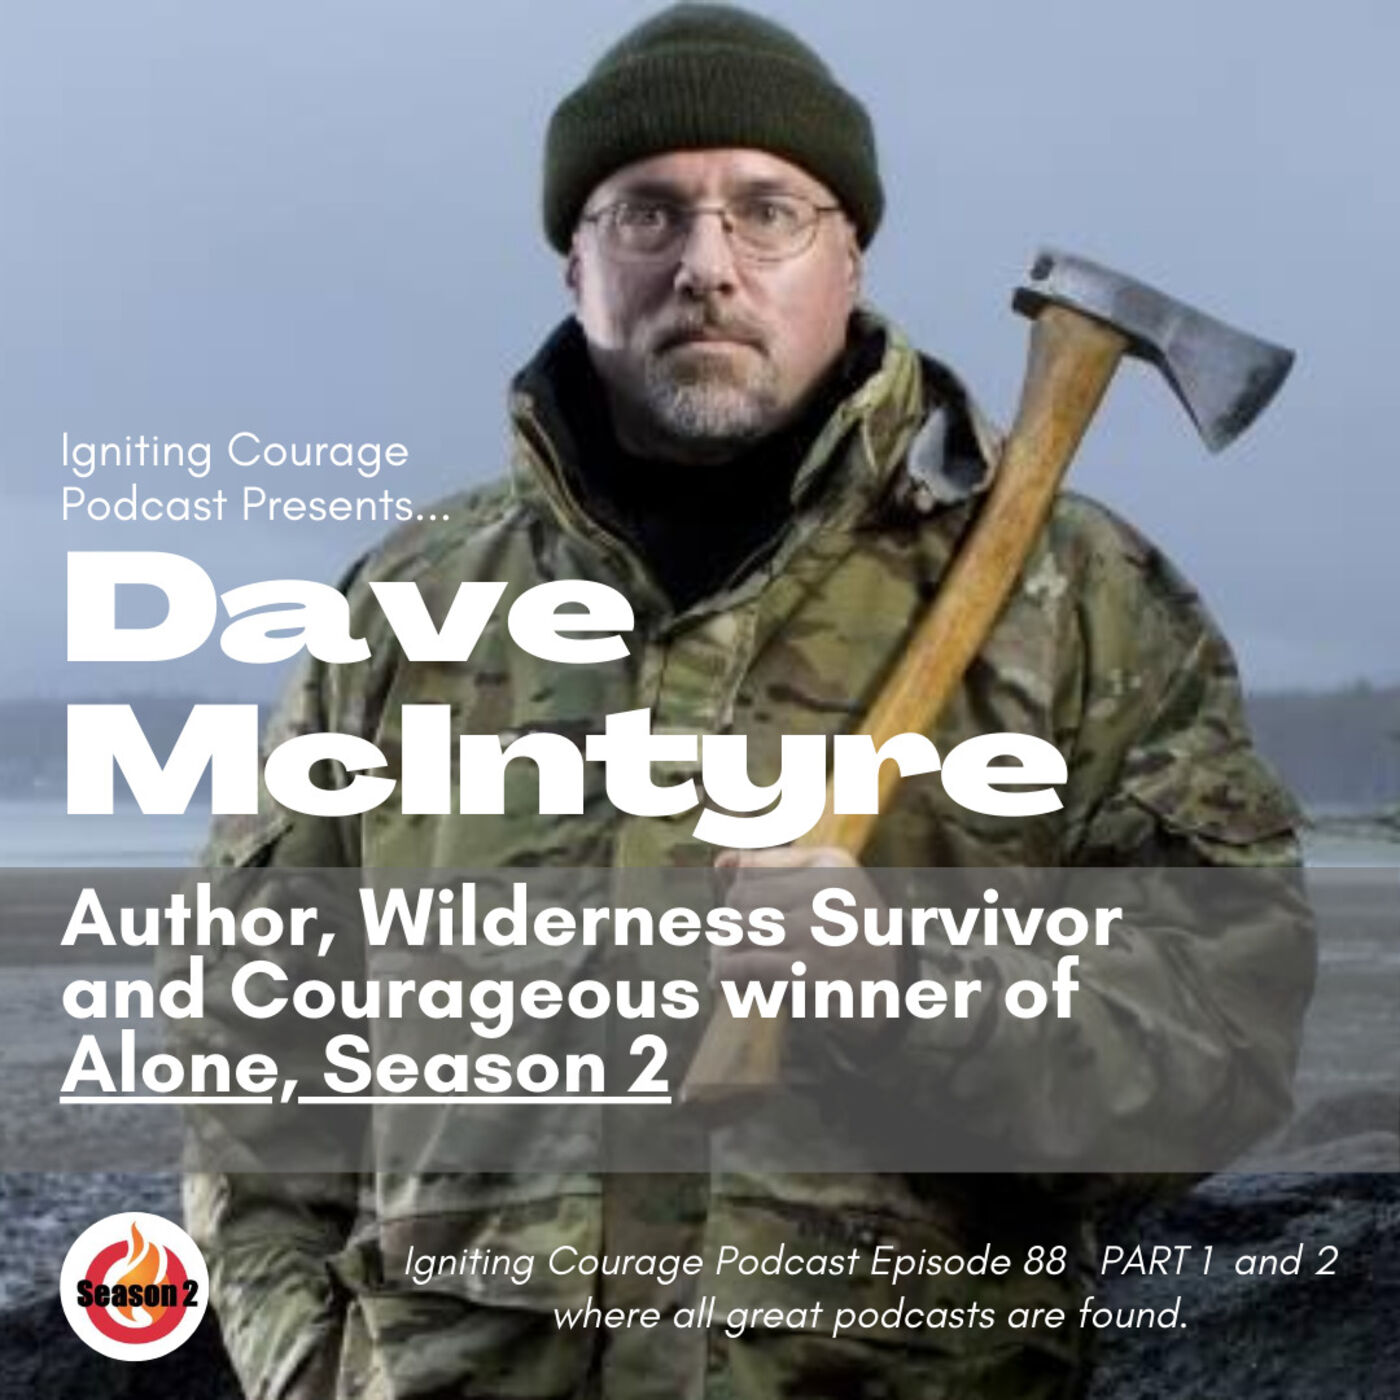 IGNITING COURAGE Podcast Episode 88 PART 2: Dave McIntyre, Author, Wilderness Survivor and Courageous Winner of Alone Season 2